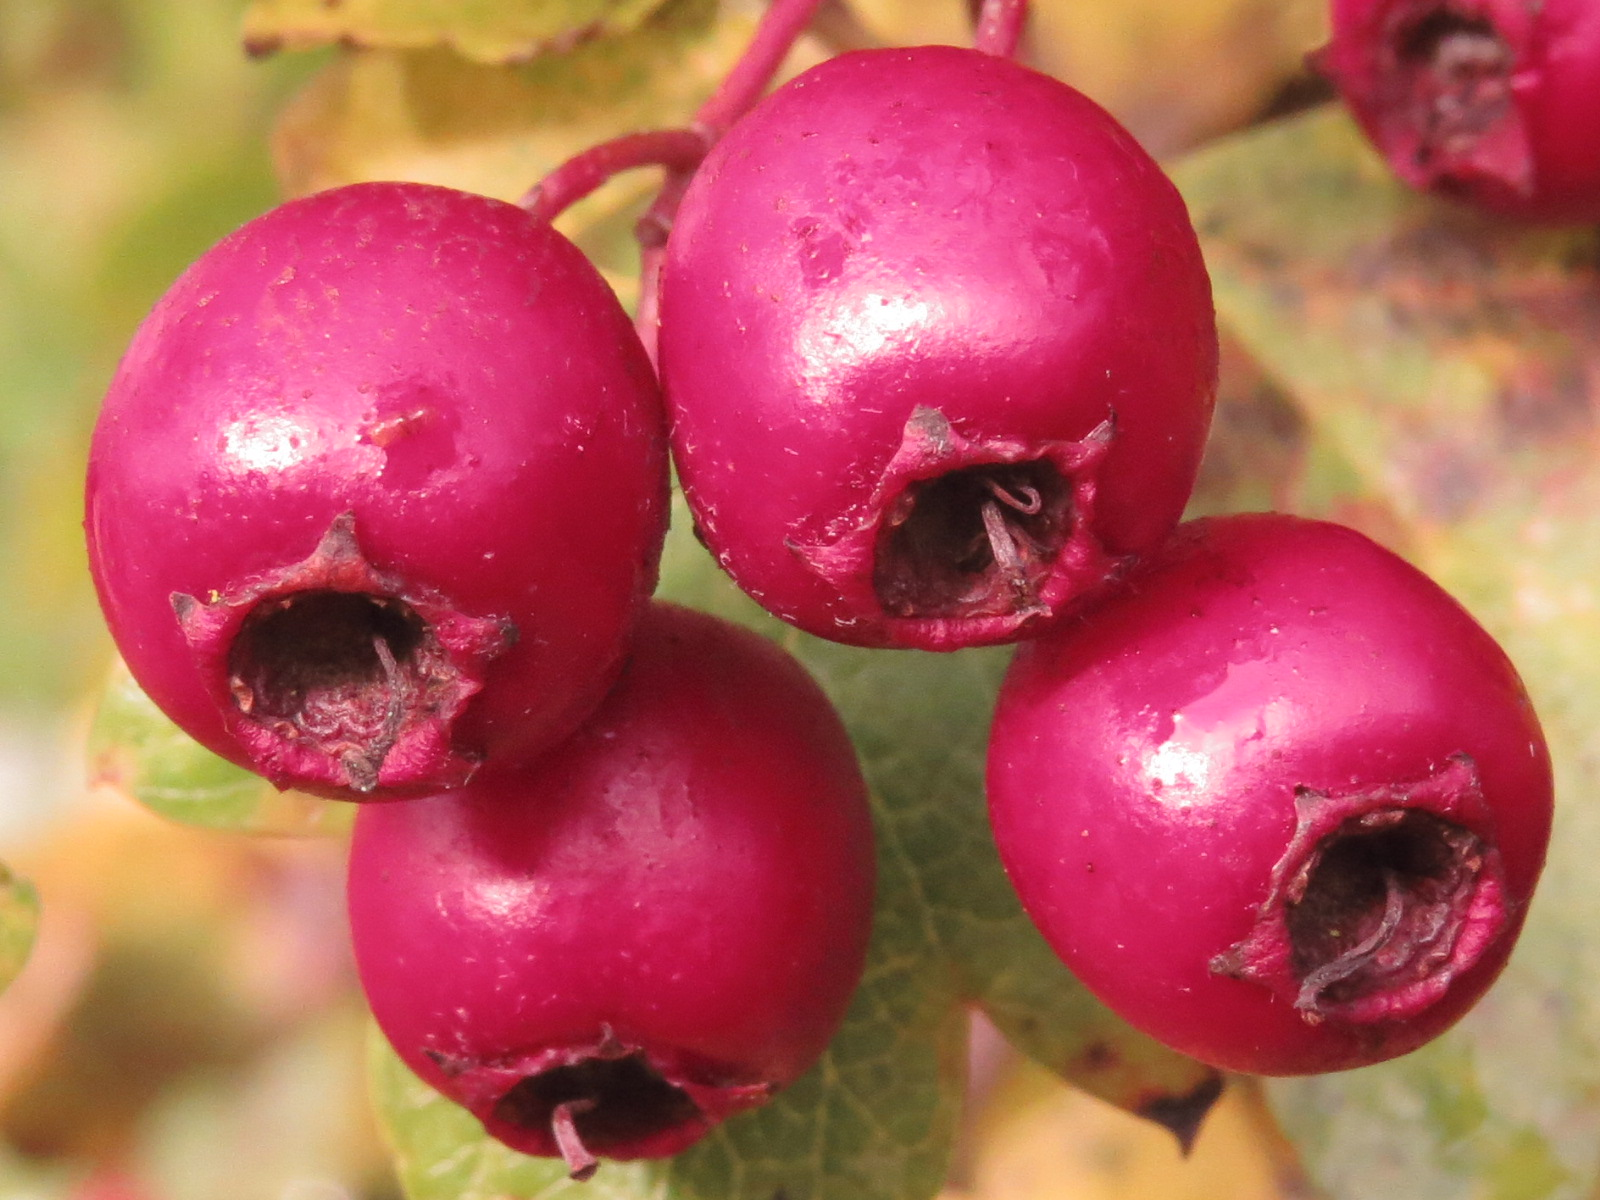 Crataegus shiny fruit